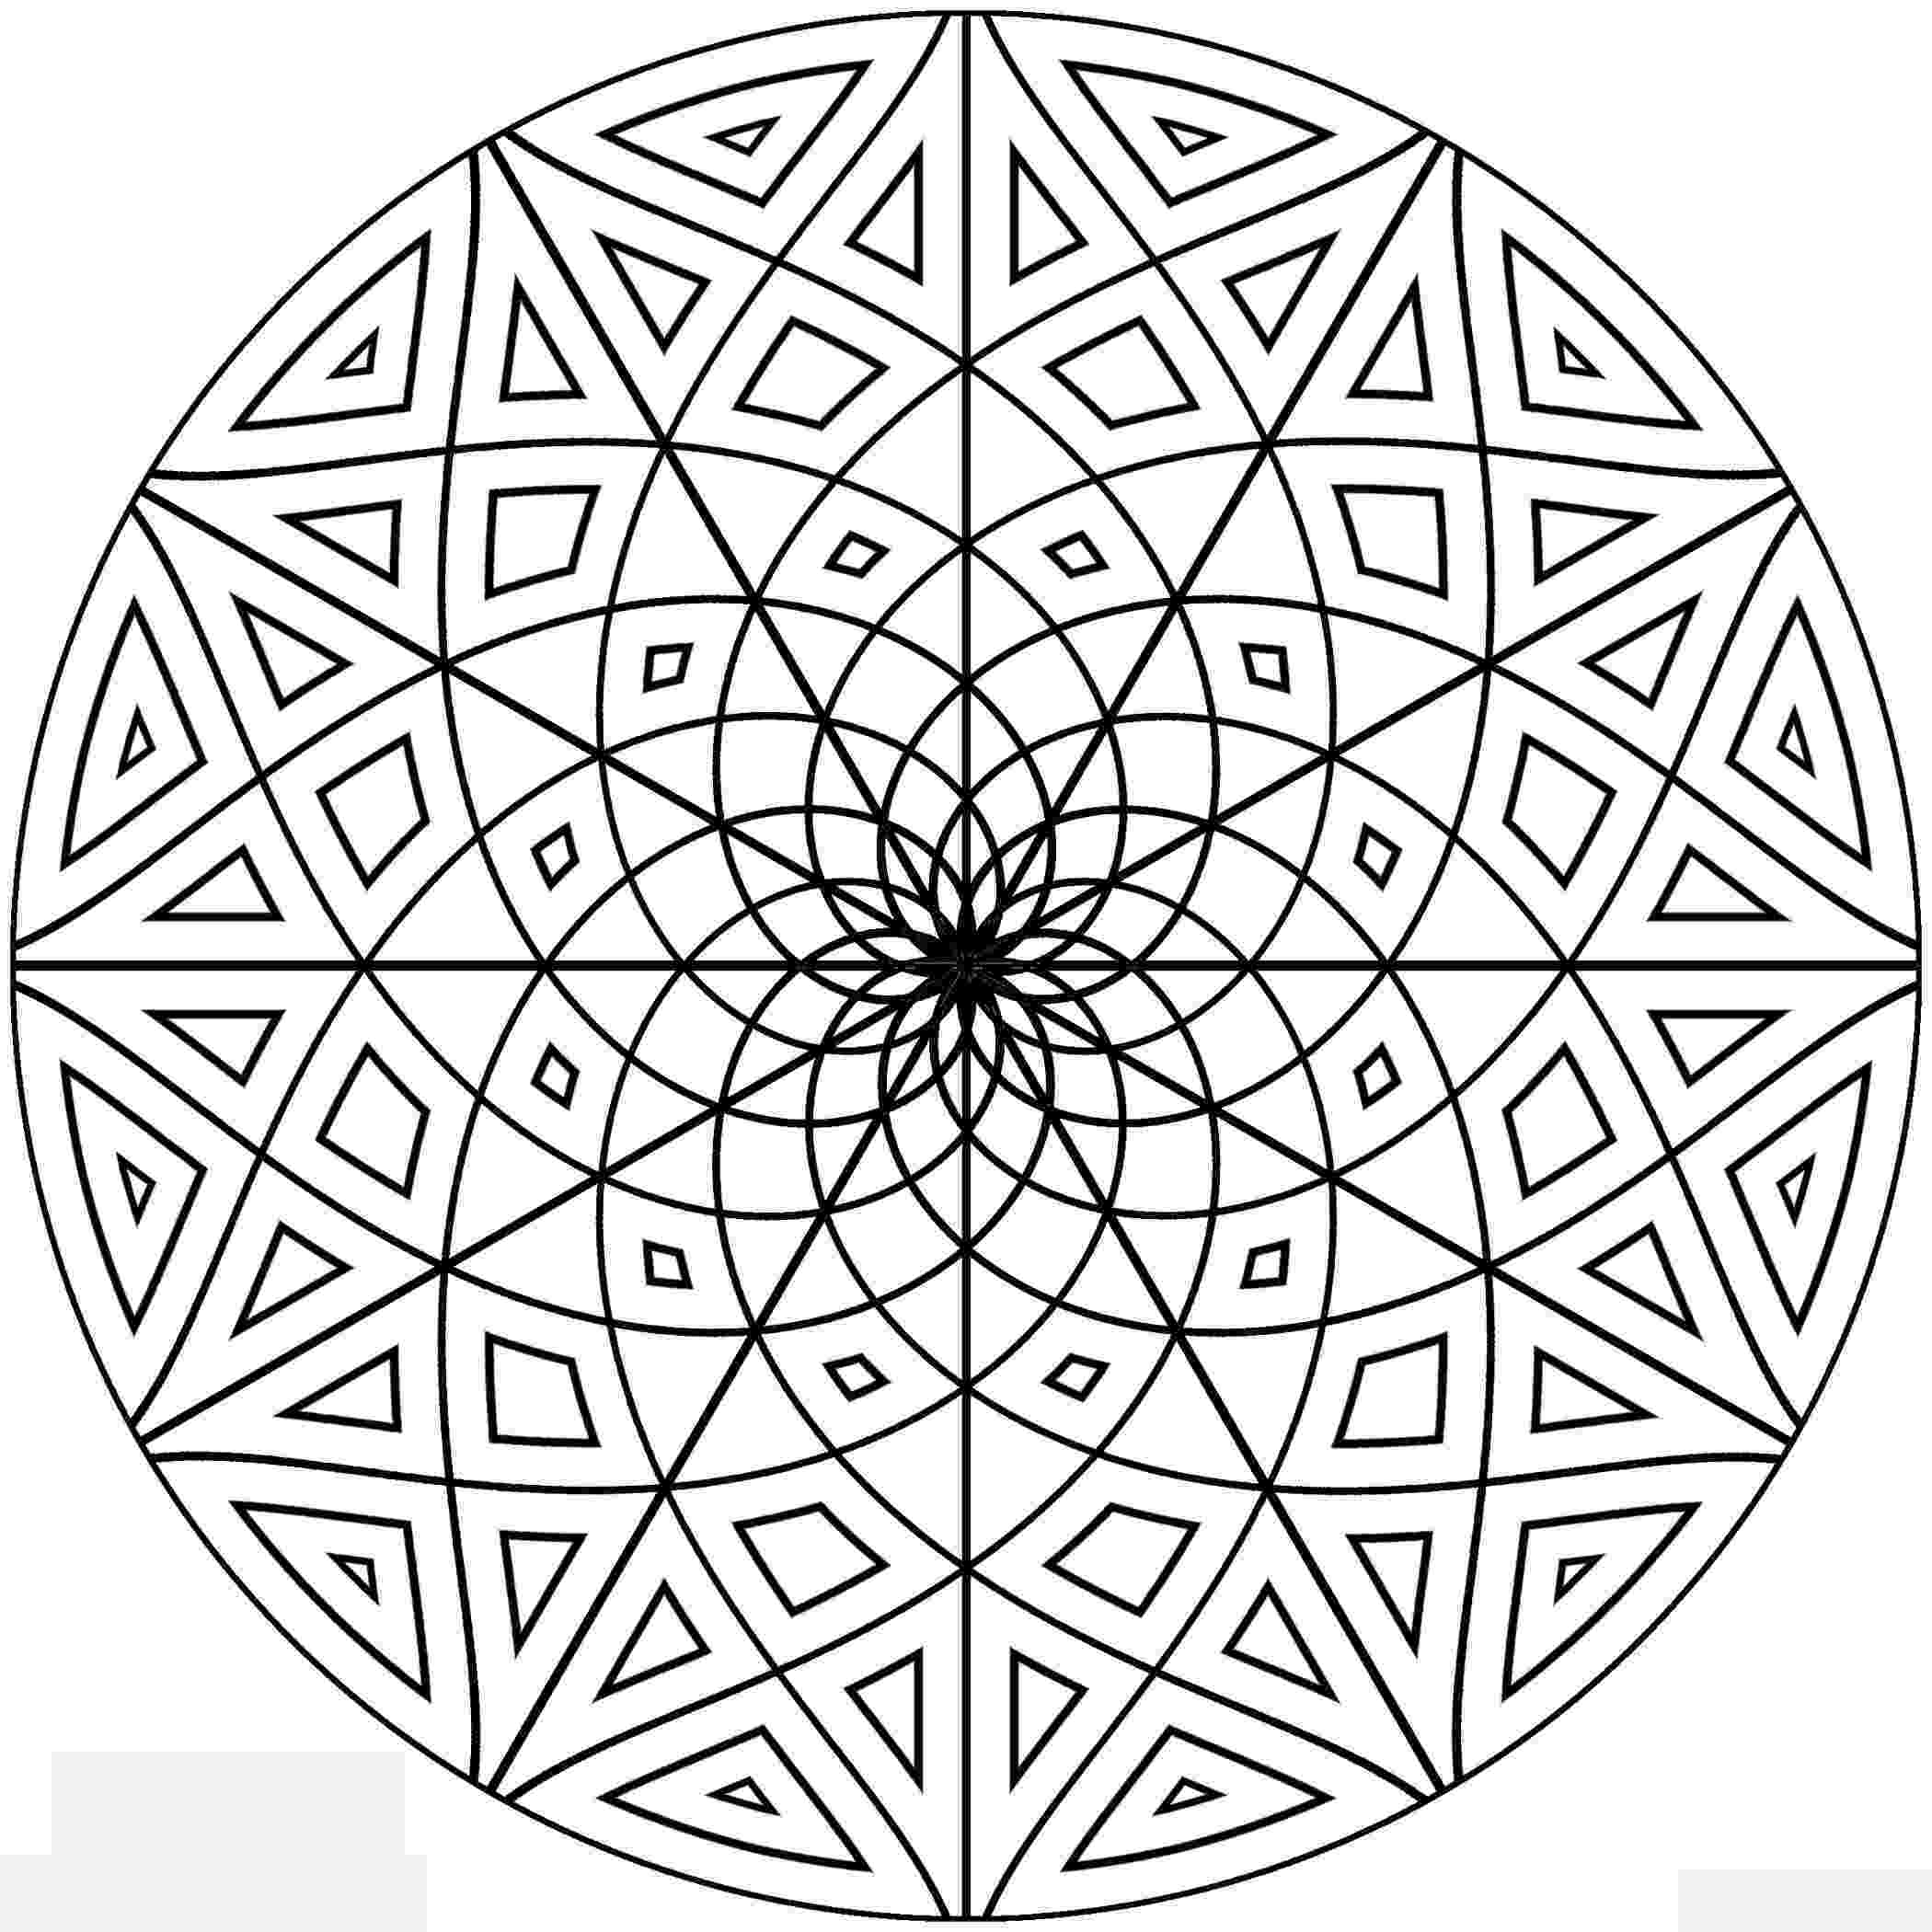 printable coloring designs geometric design coloring pages to download and print for free designs printable coloring